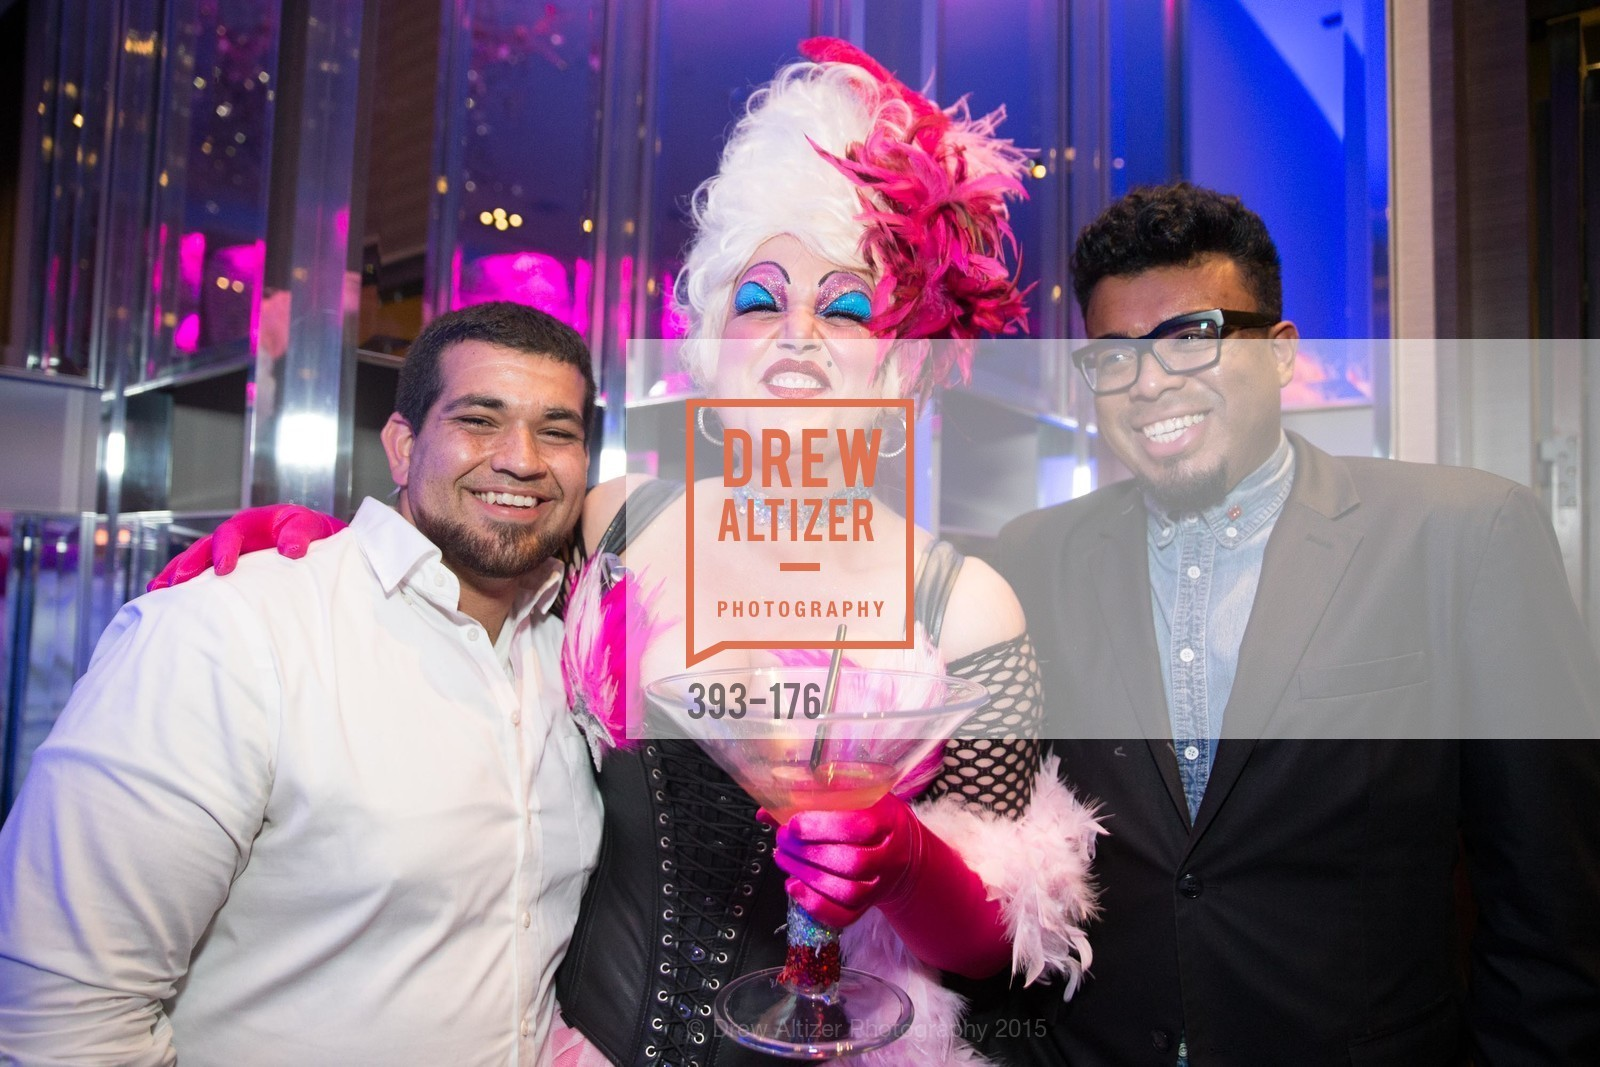 Eddie Jimenez, Anita Cocktail, Matthew Robinson, VIP Pride Celebration 2015, St. Regis, June 18th, 2015,Drew Altizer, Drew Altizer Photography, full-service agency, private events, San Francisco photographer, photographer california